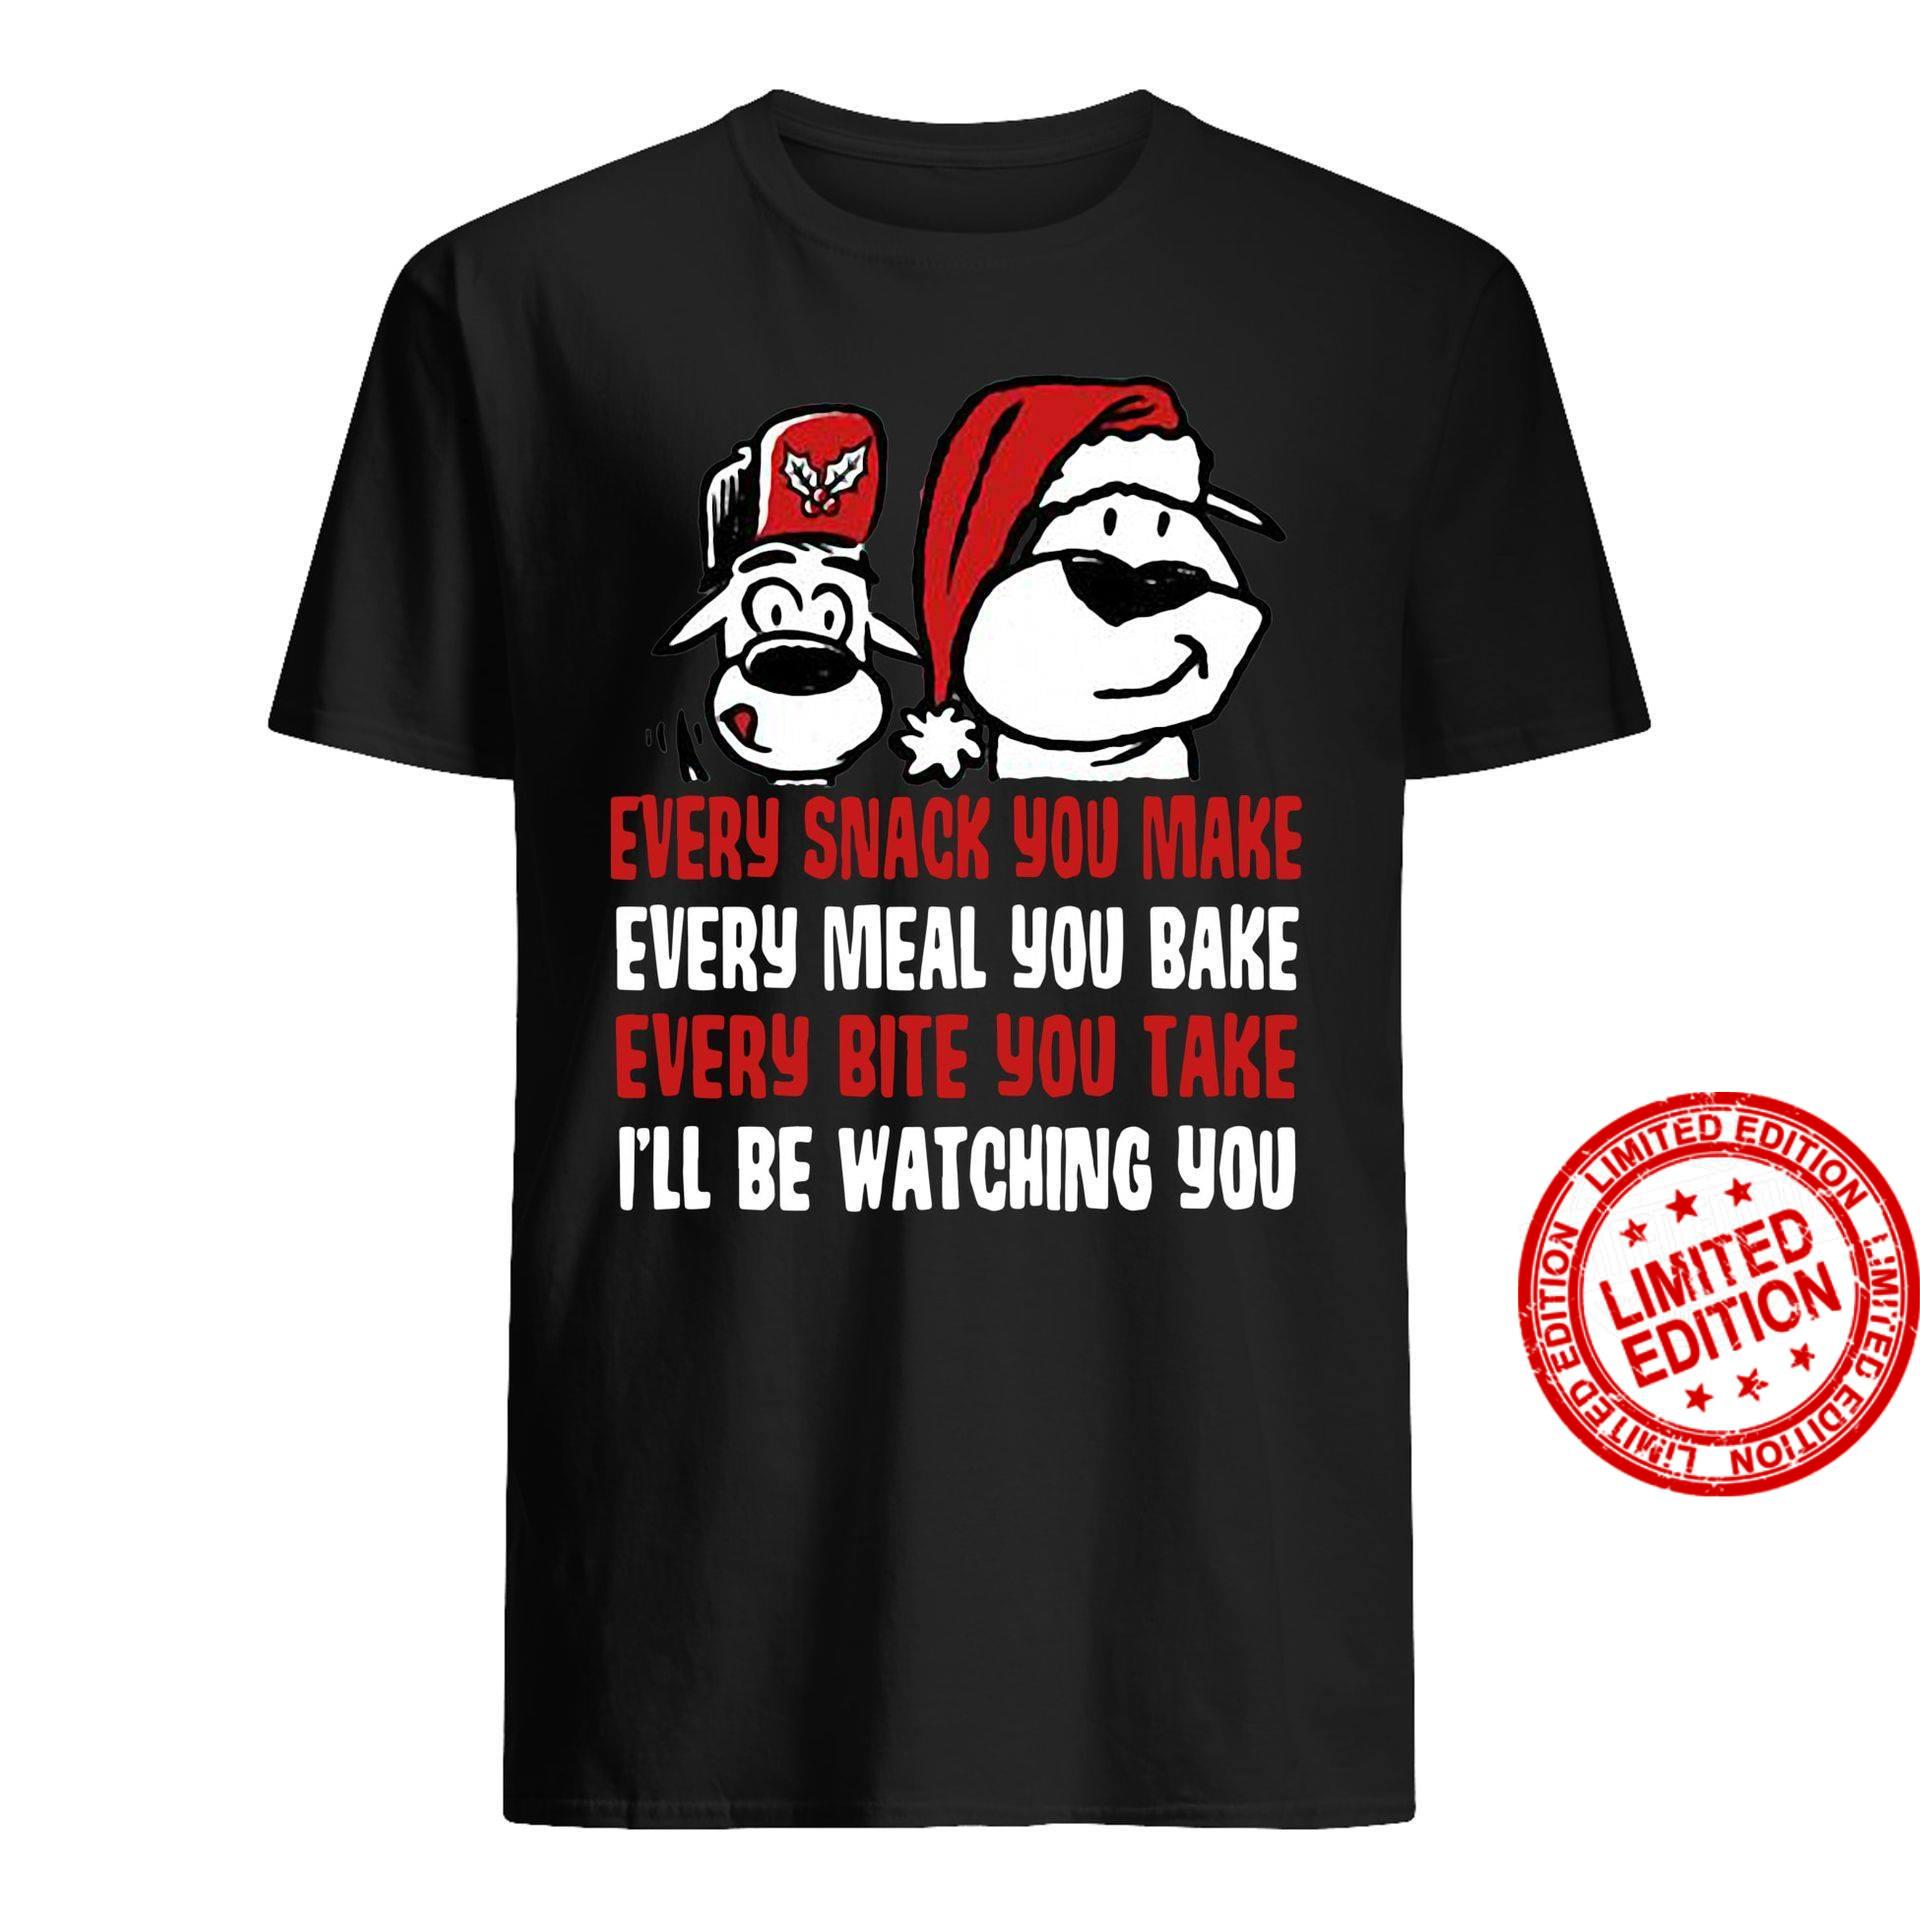 Snoopy Every Snack You Make Every Meal You Bake Every Bite You Take I'll Be Watching You Shirt